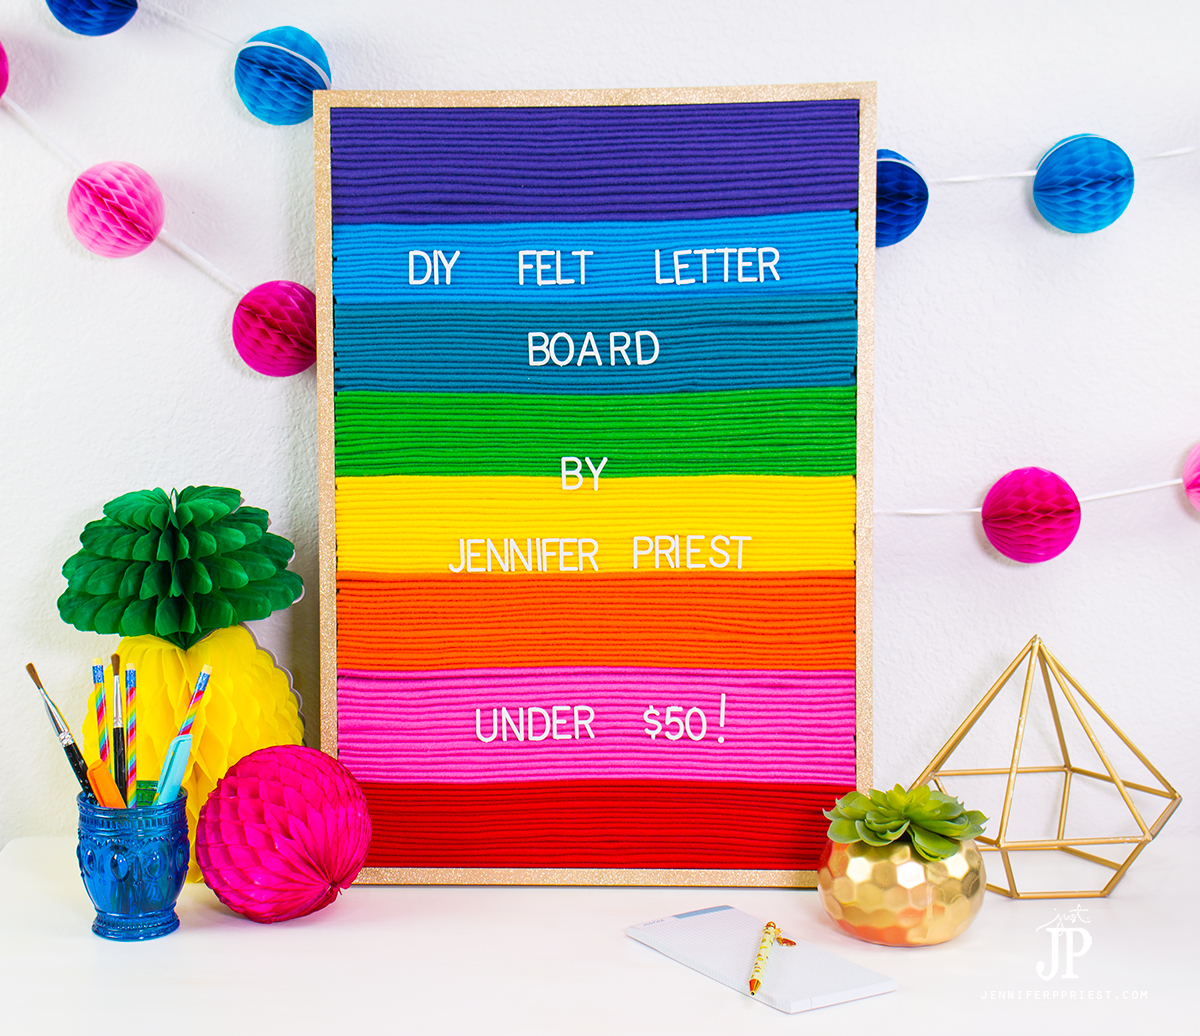 How to make a rainbow DIY felt letter board for under $50 - don't buy a felt letter sign that looks like everyone else's. Make a CUSTOM one!